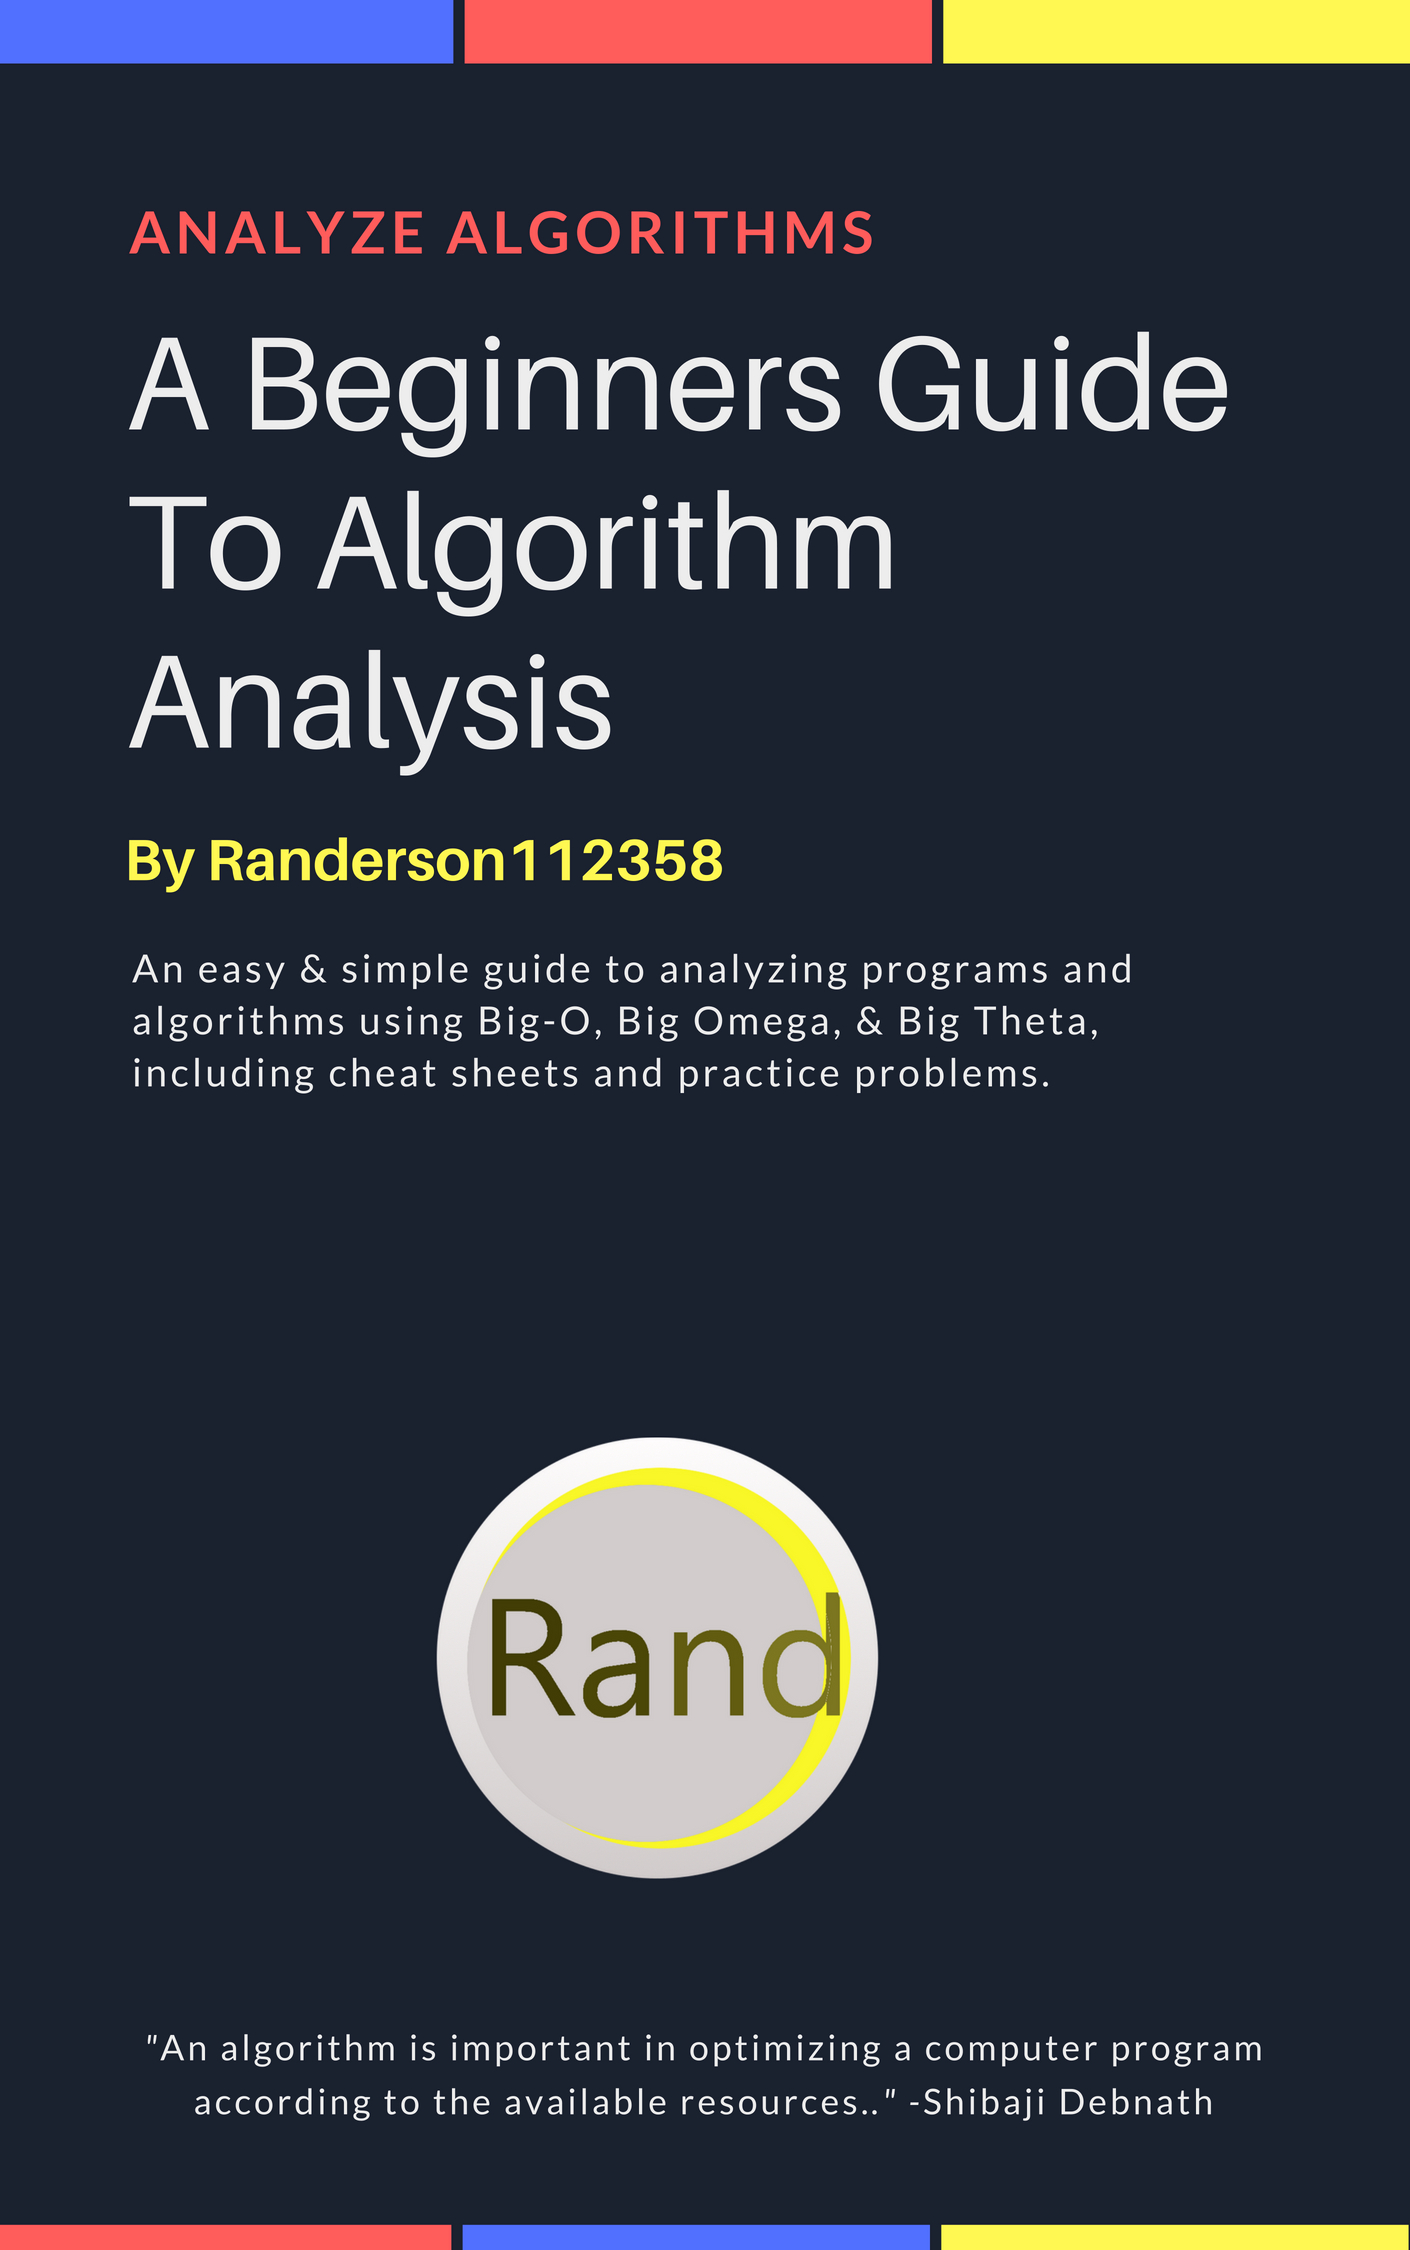 Algorithm Analysis Beginners Guide IMG